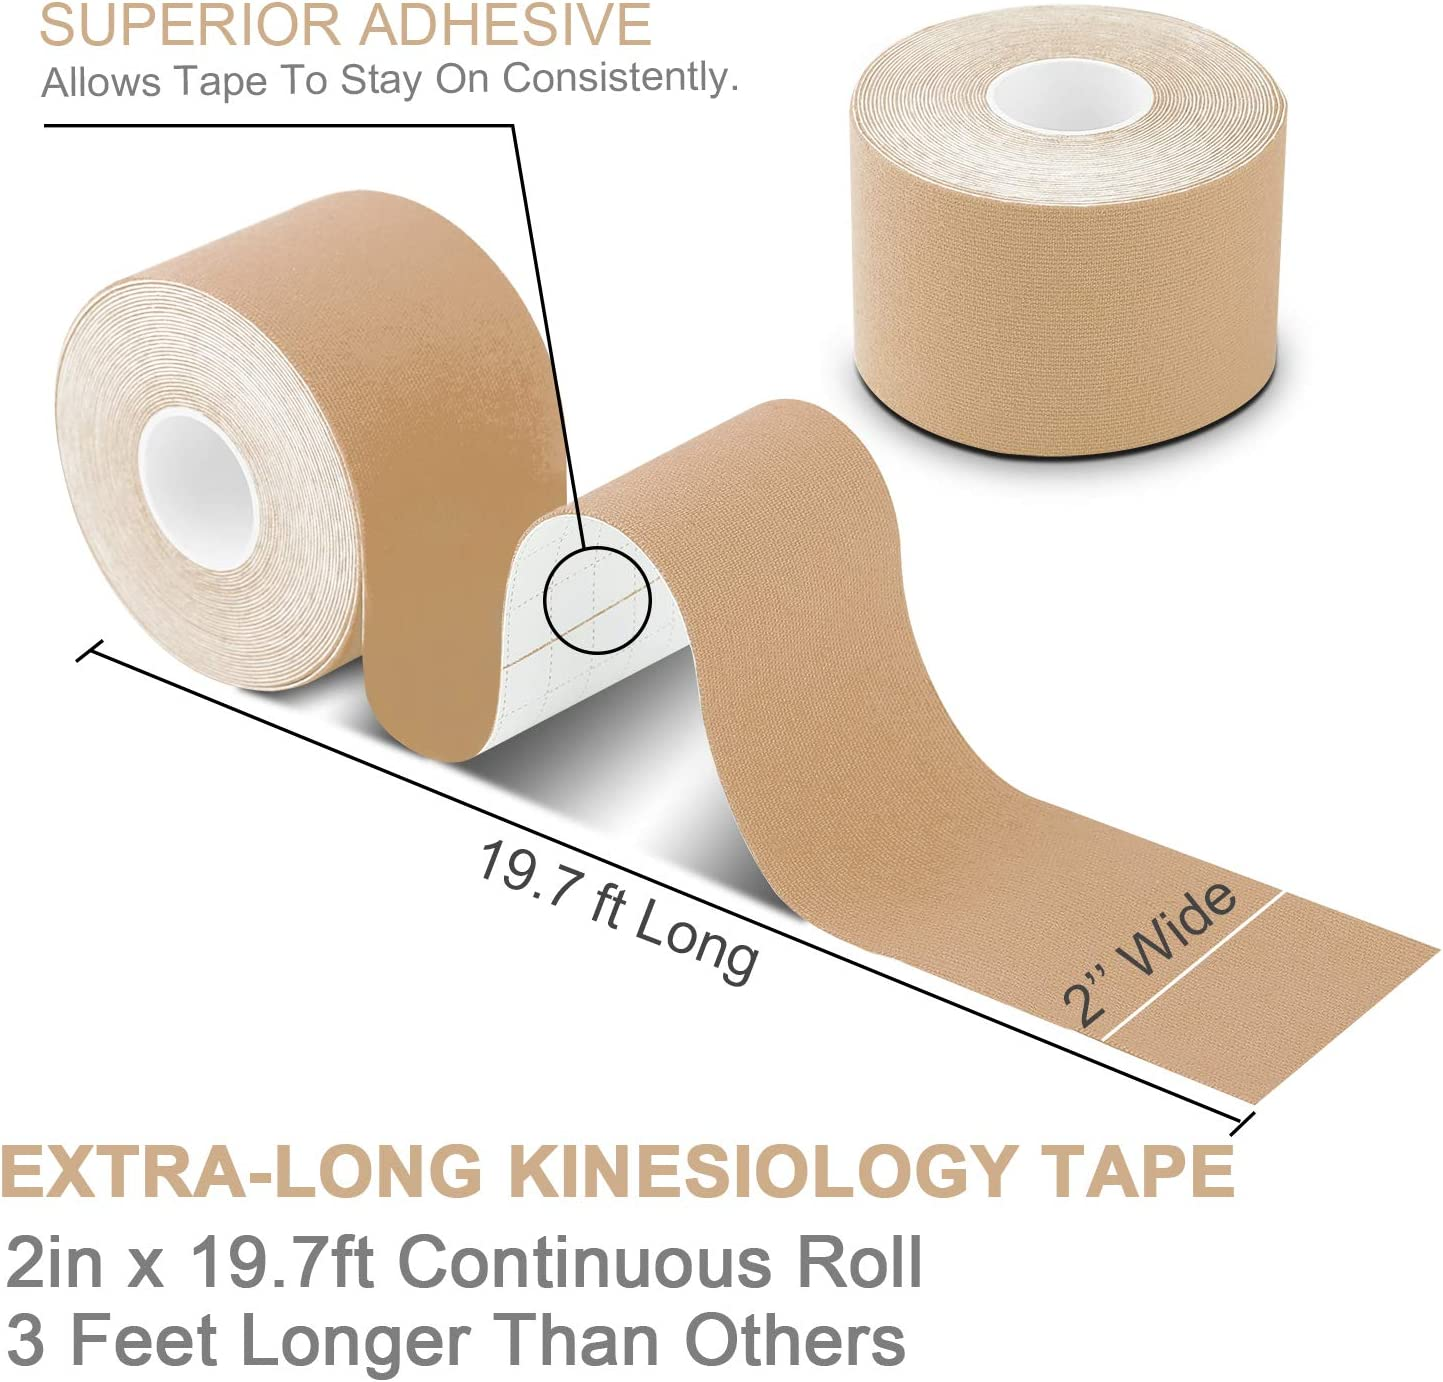 Breathable Free Taping Guide Water Resistant Sports Tape for Muscles /& Joints Pain Relief and Injury Recovery Latex Free Physio Tape 19.7ft Uncut Per Roll, 3 Rolls Laneco Kinesiology Tape